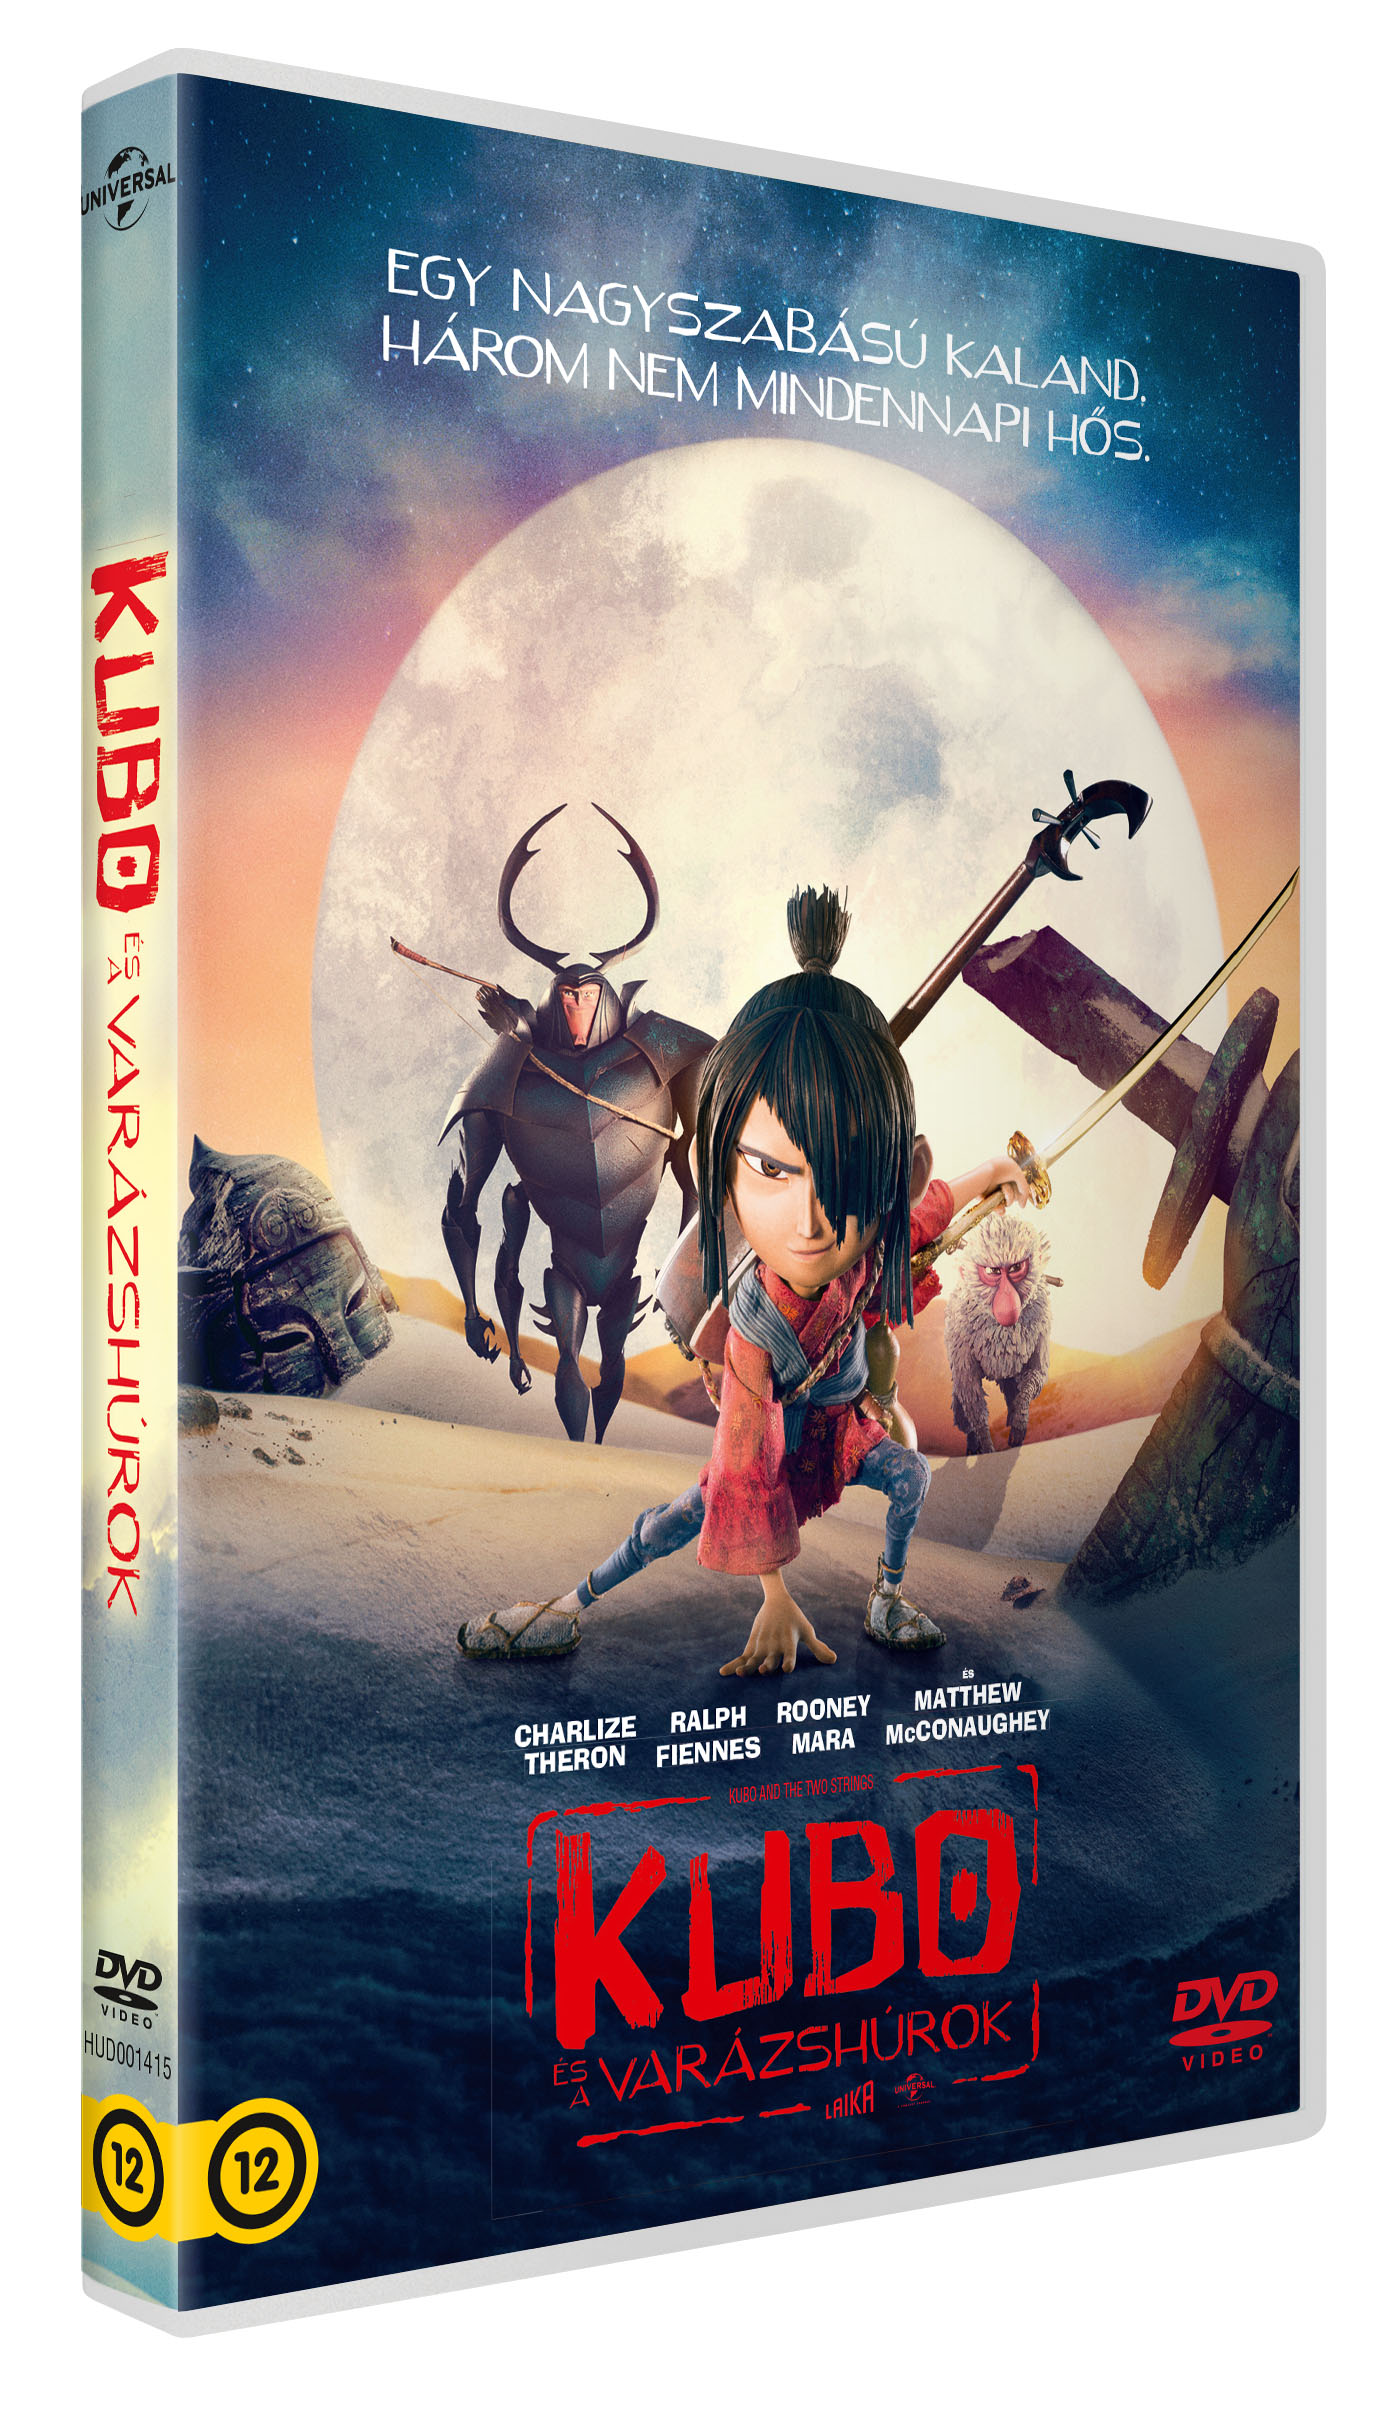 kubo_and_the_two_strings_hud001415_3d.jpg